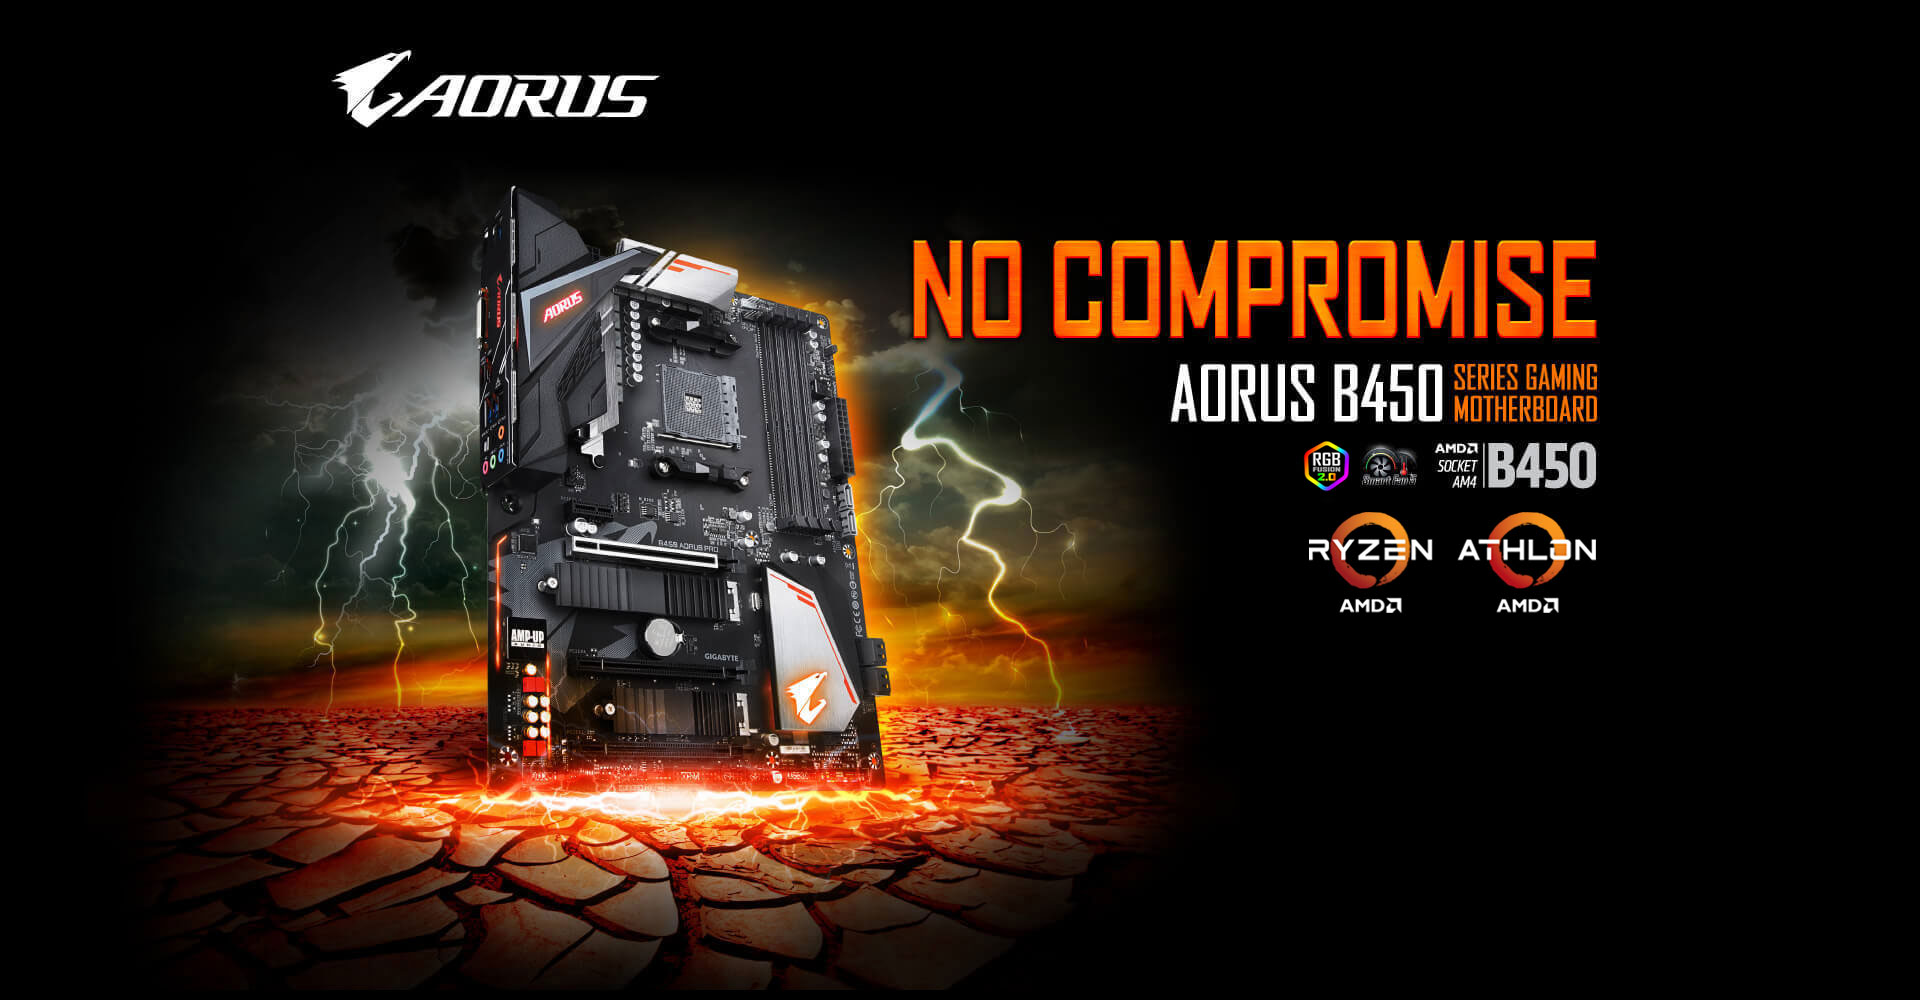 B450 Aorus Pro Rev 10 Motherboard Gigabyte Global Led Beat Box Wiring Diagram Excellence